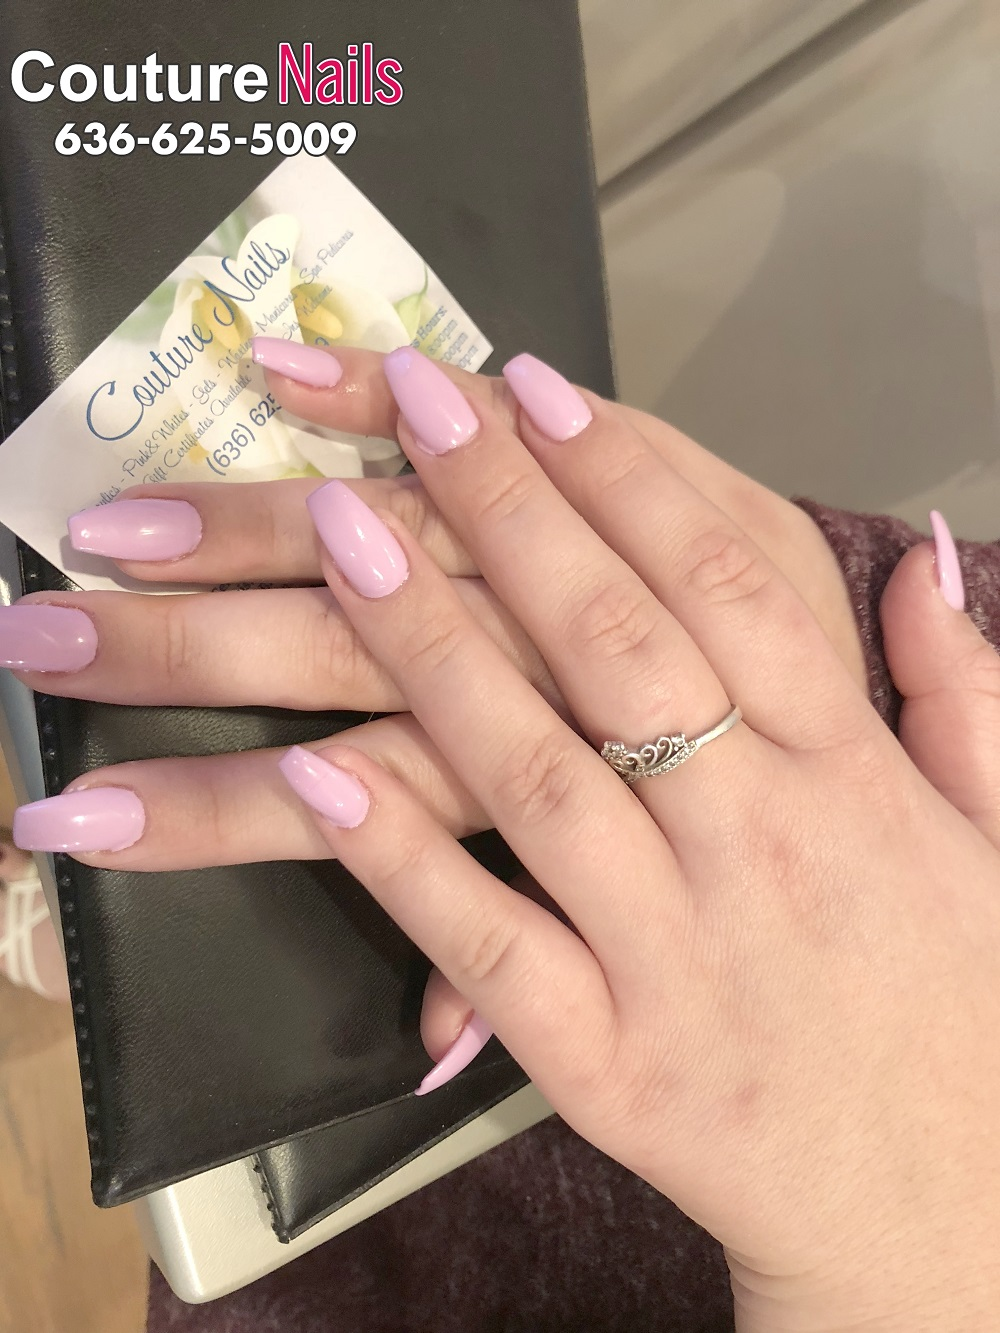 Couture Nails   Nails salon in Lake St Louis MO 63367